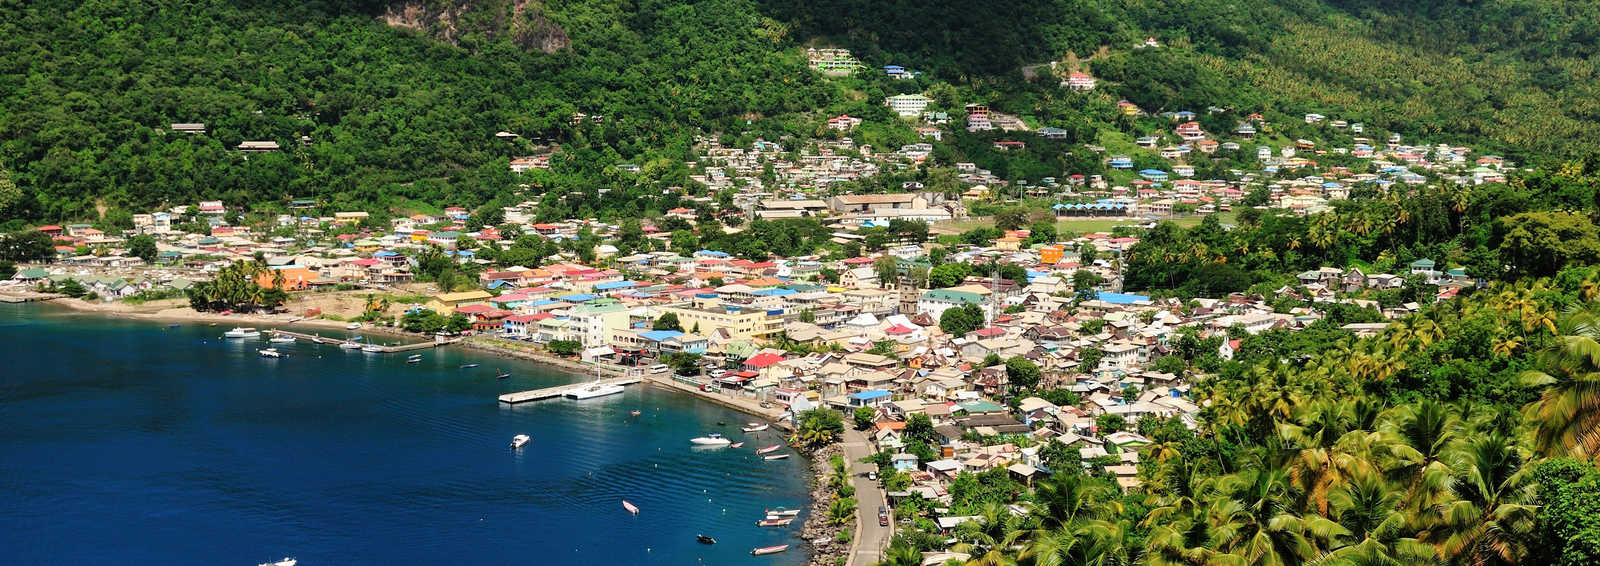 The vibrant coastal city of Soufriere, St. Lucia